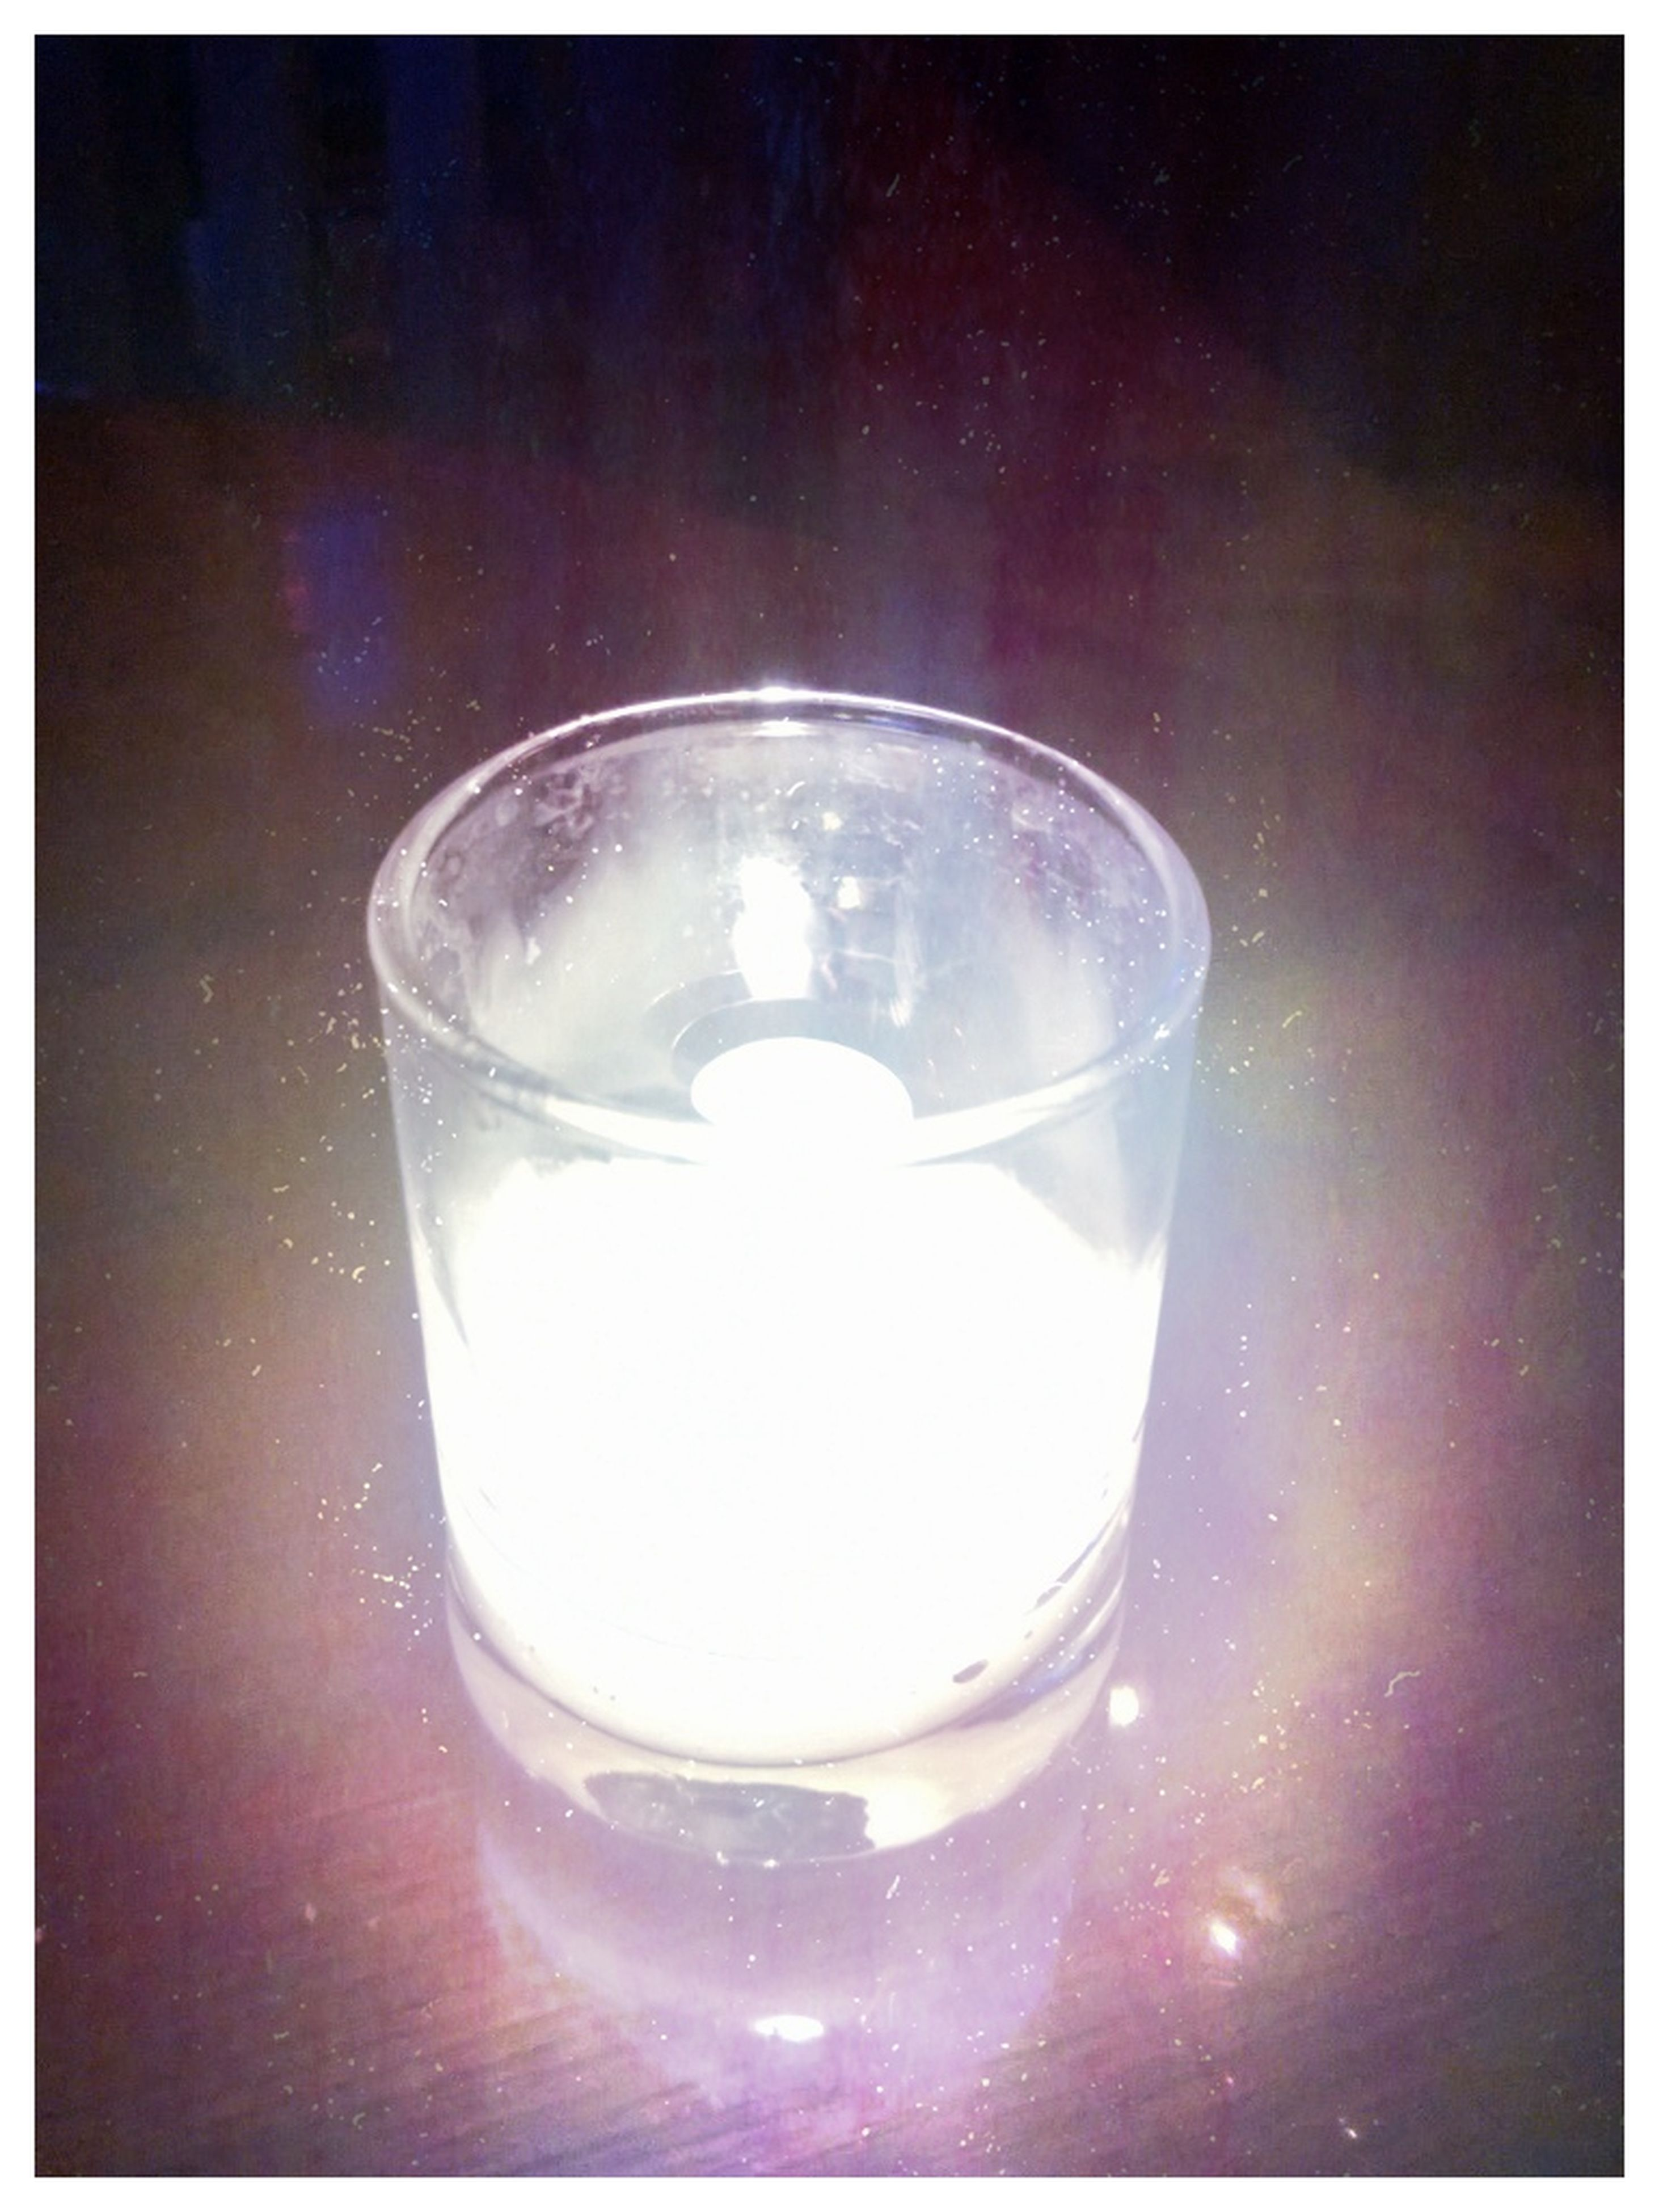 indoors, transfer print, glass - material, transparent, auto post production filter, illuminated, lighting equipment, close-up, light bulb, drinking glass, drink, glass, electricity, glowing, still life, reflection, refreshment, electric light, no people, table